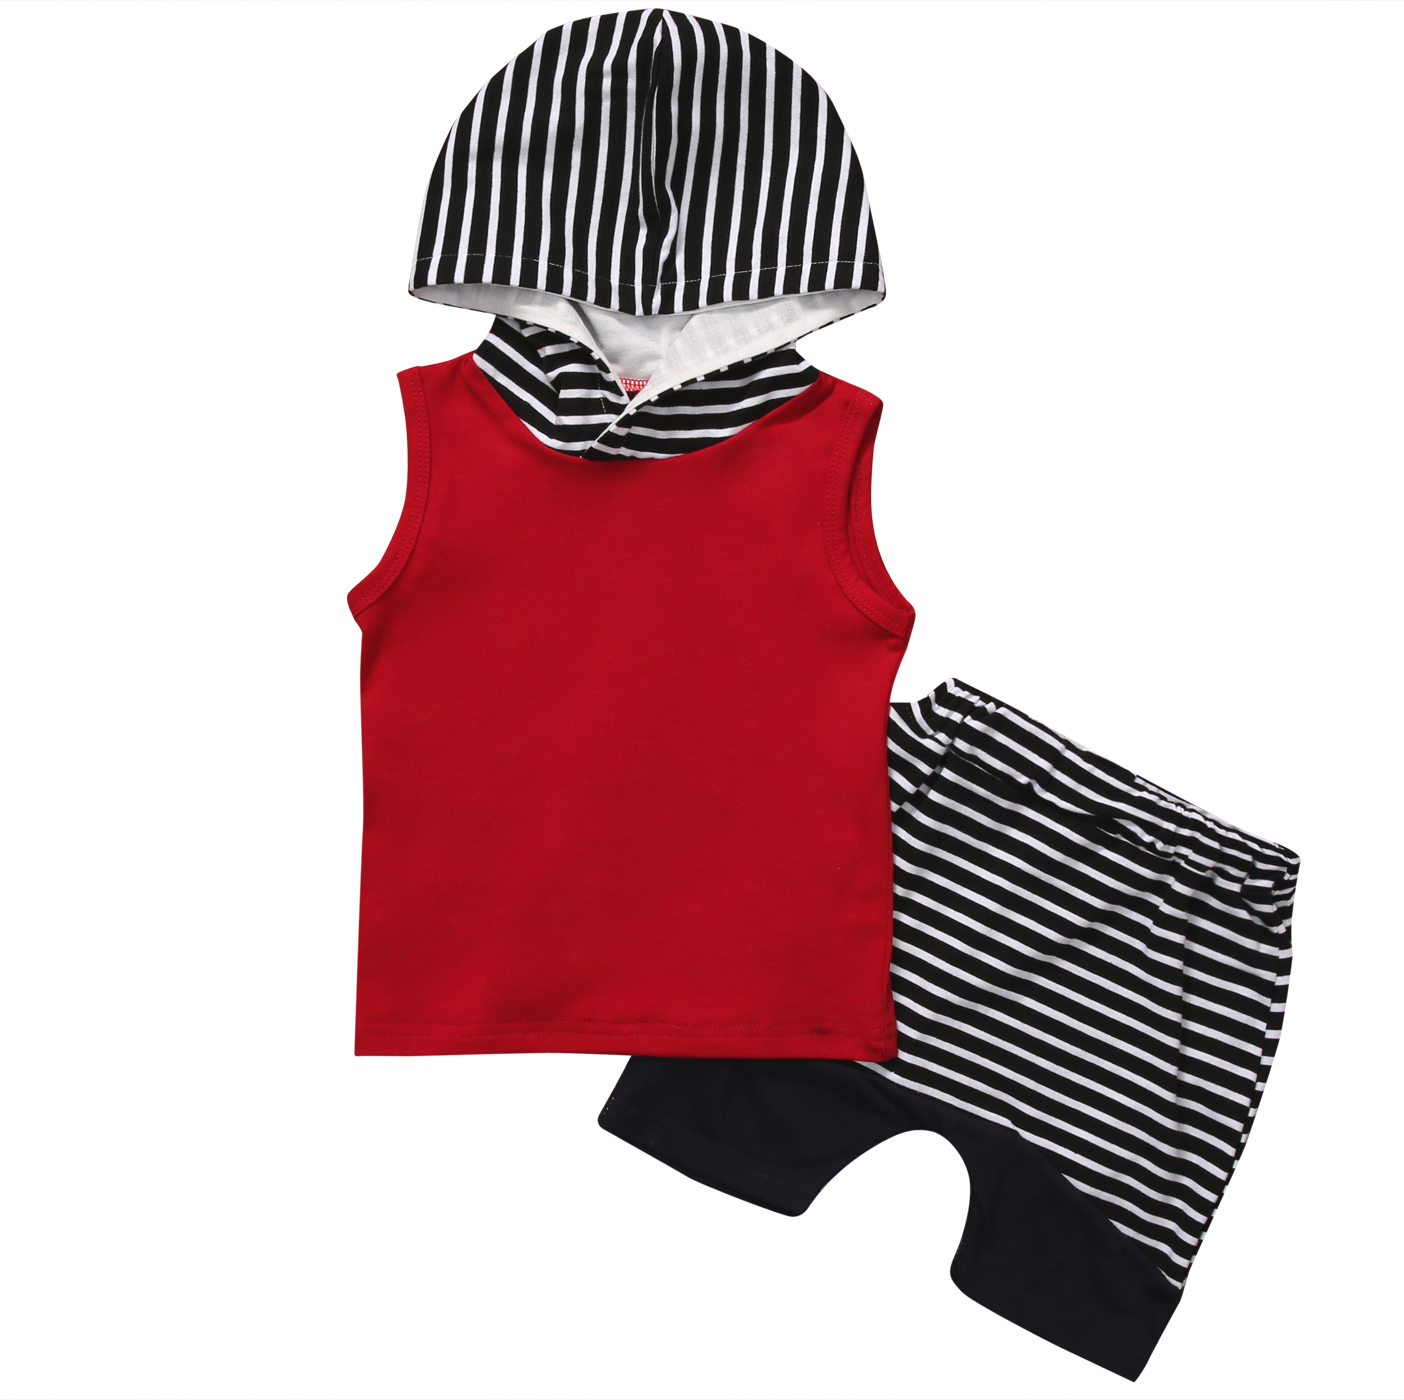 2017 Summer Baby Boy Clothes Sleeveless Hooded Tops +Striped Shorts Pant 2PCS Outfits Toddler Kids Clothing Set 2pcs kids toddler baby girls denim ruffle loose t shirt tops striped shorts 2017 summer newborn baby girl clothes outfits set